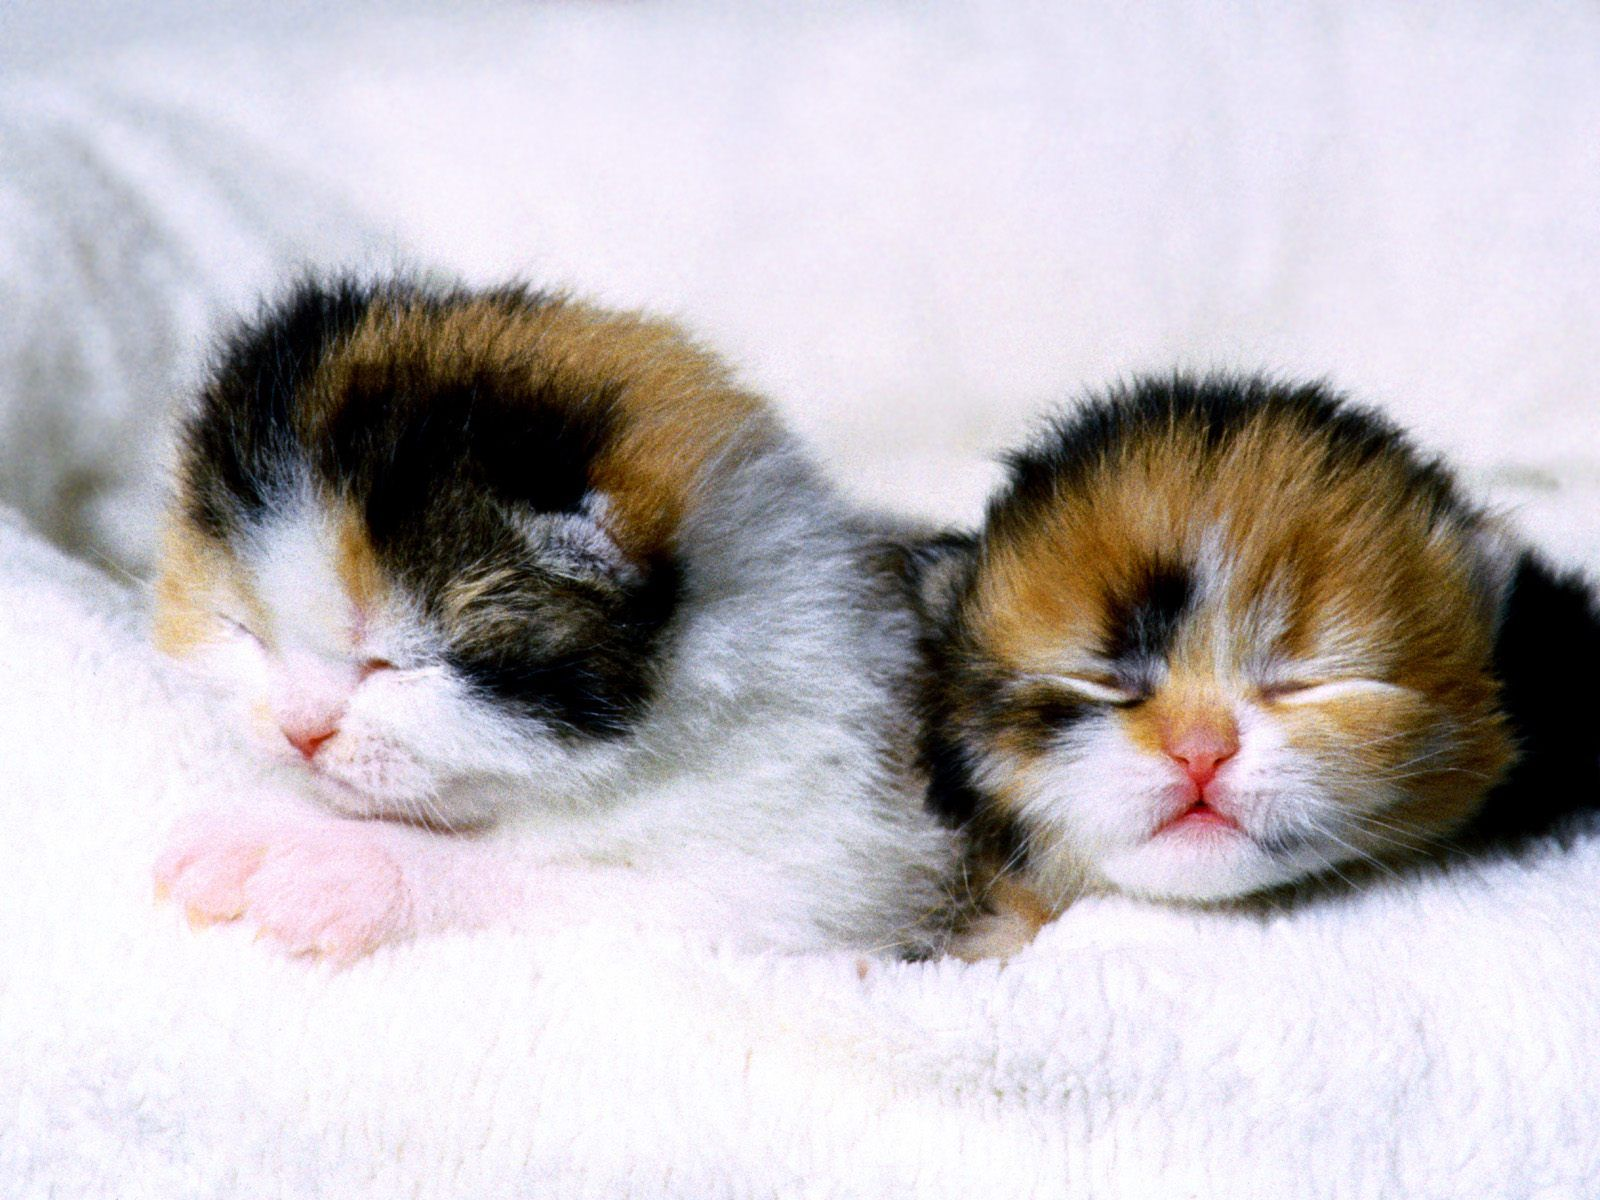 Tiny Baby Scottish Fold Kittens CUTE CATS 2 Pinterest